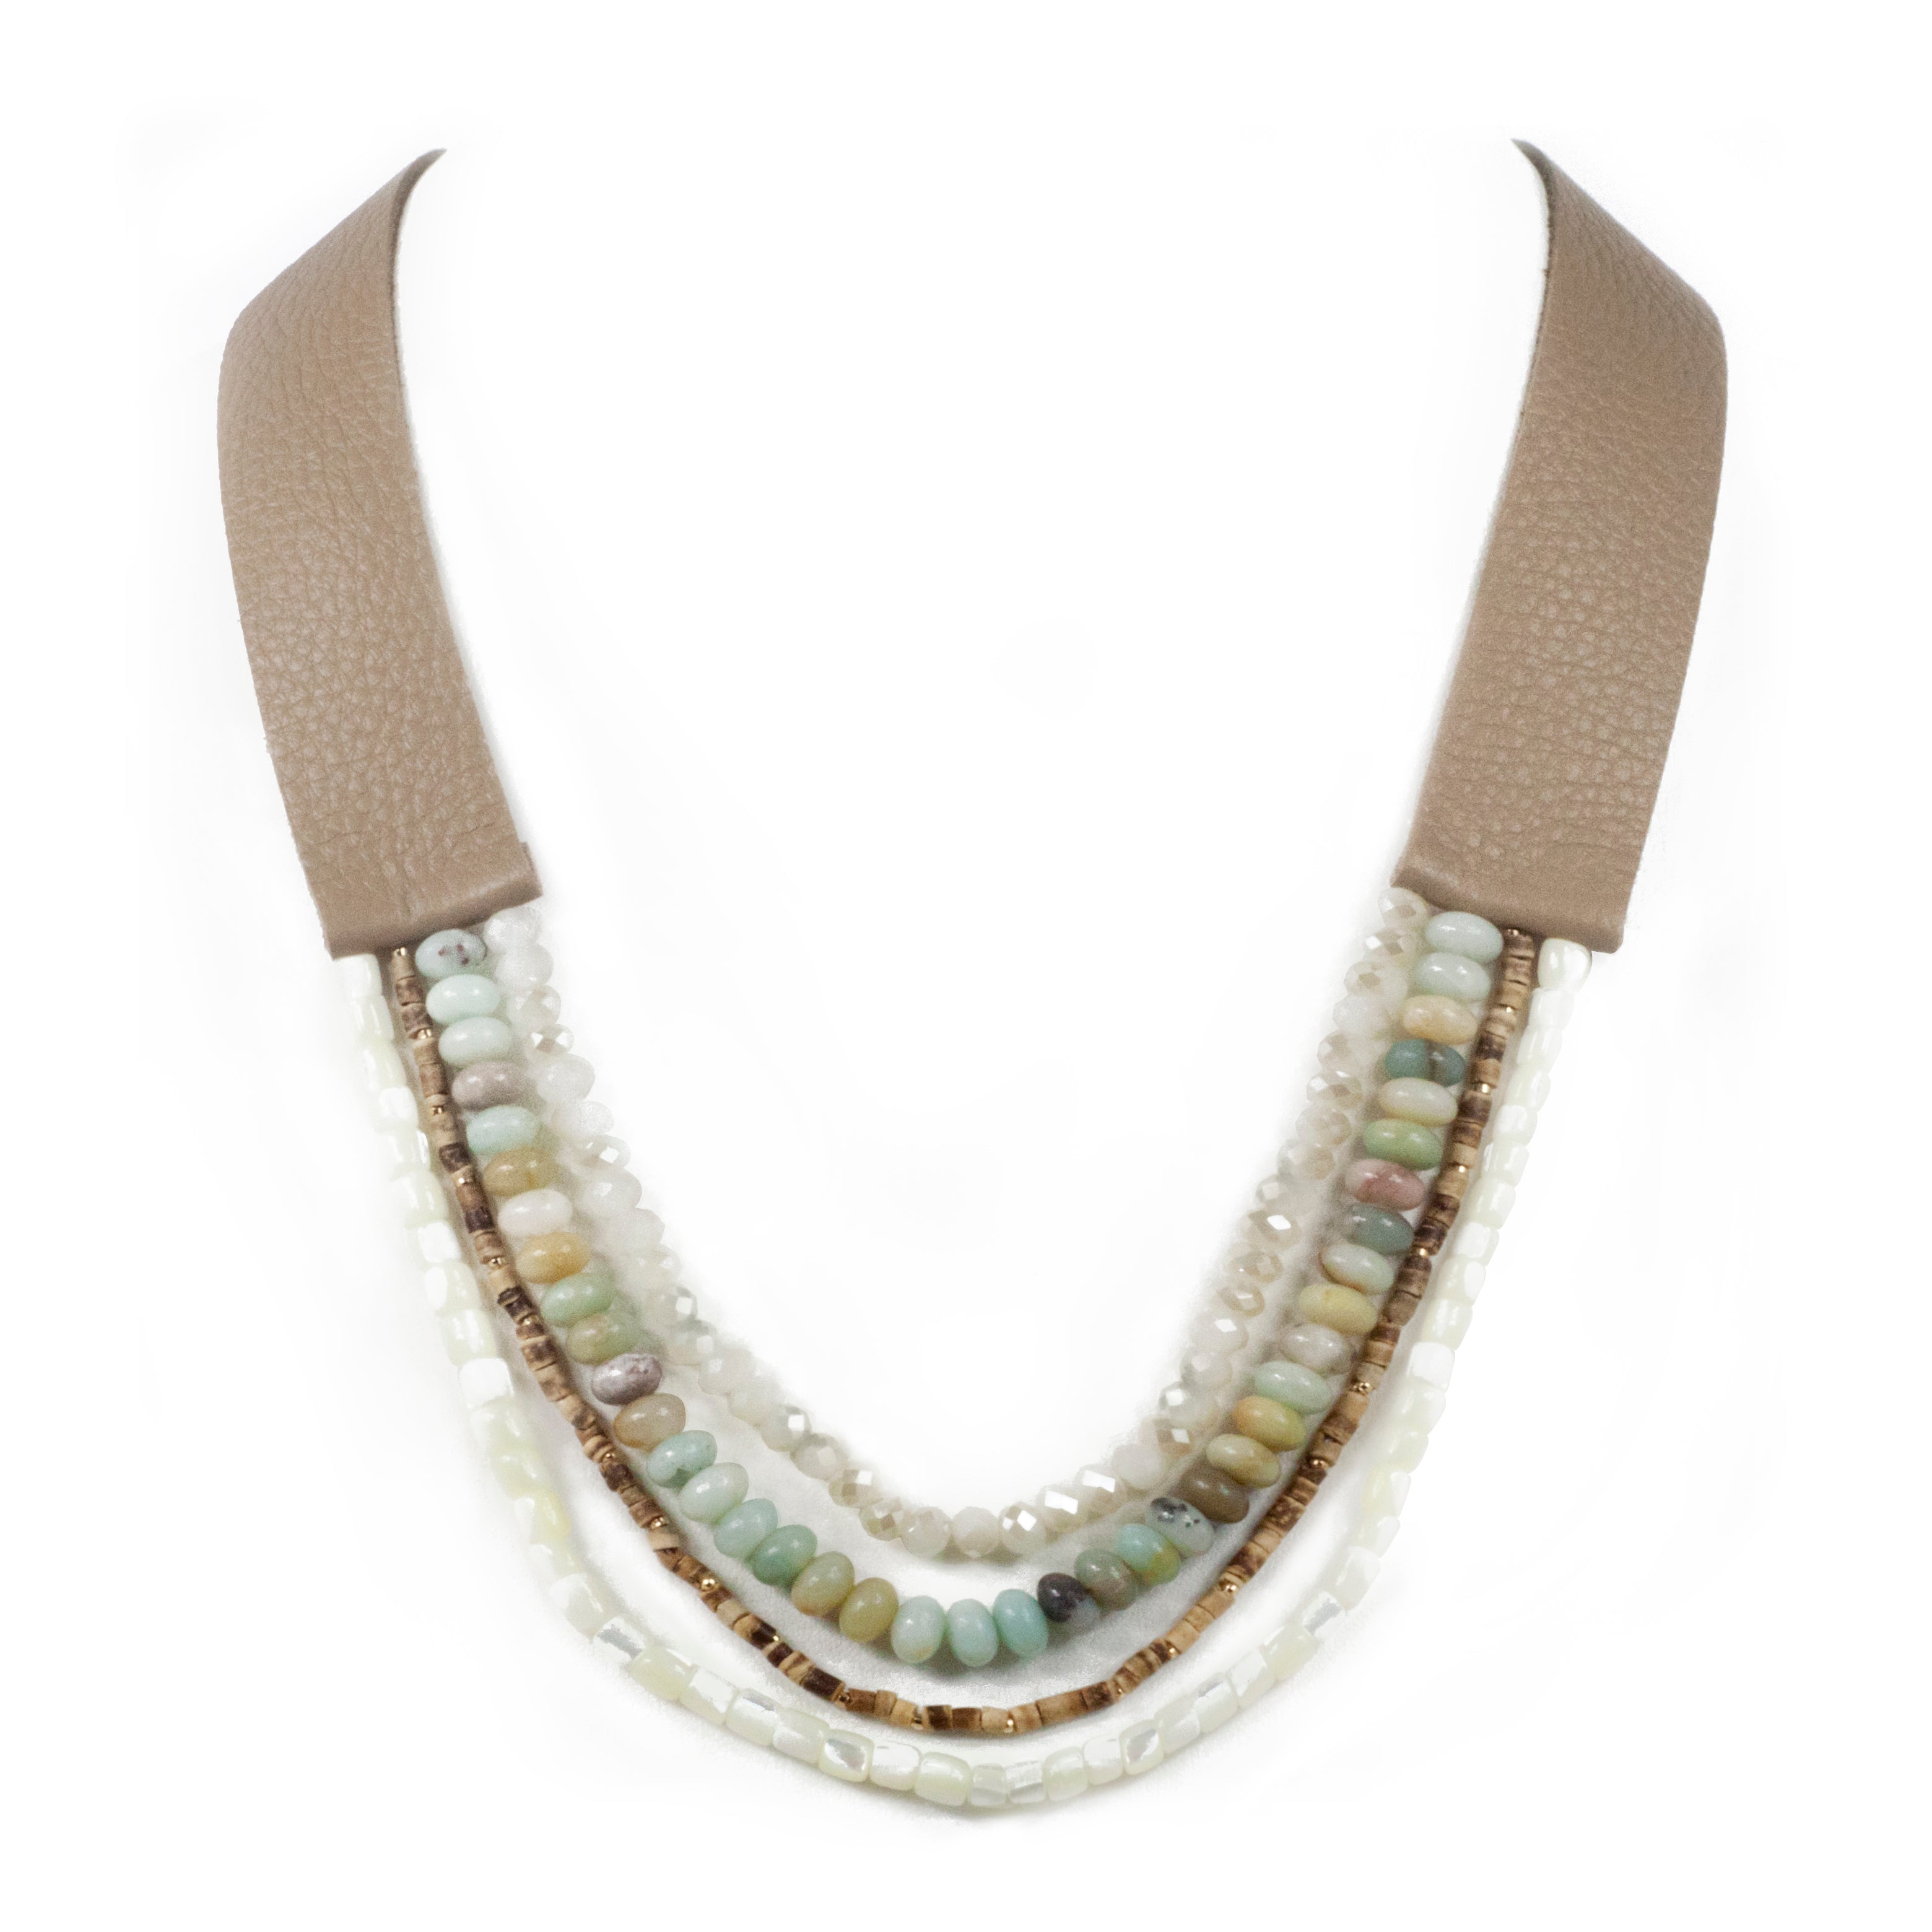 Multi Layered Semi Precious Stone Leather Strap Necklace